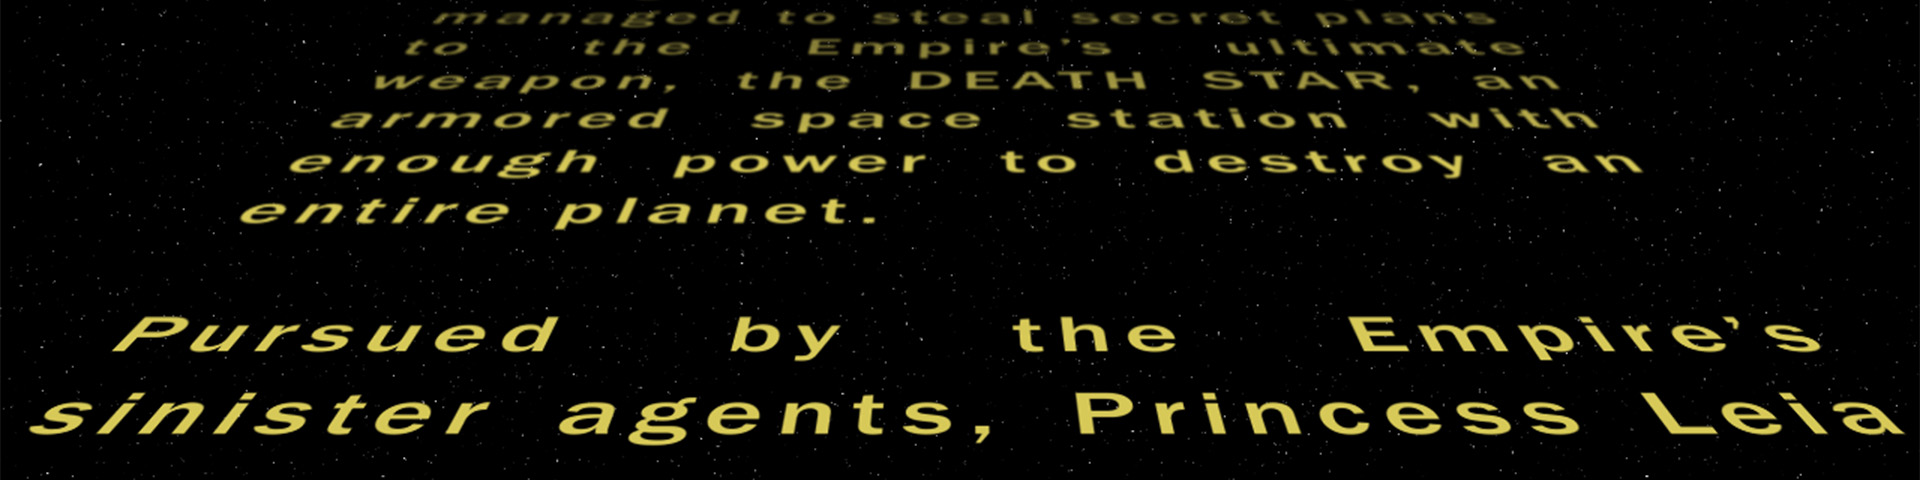 Basic After Effects tutorial: Star Wars opening crawl!